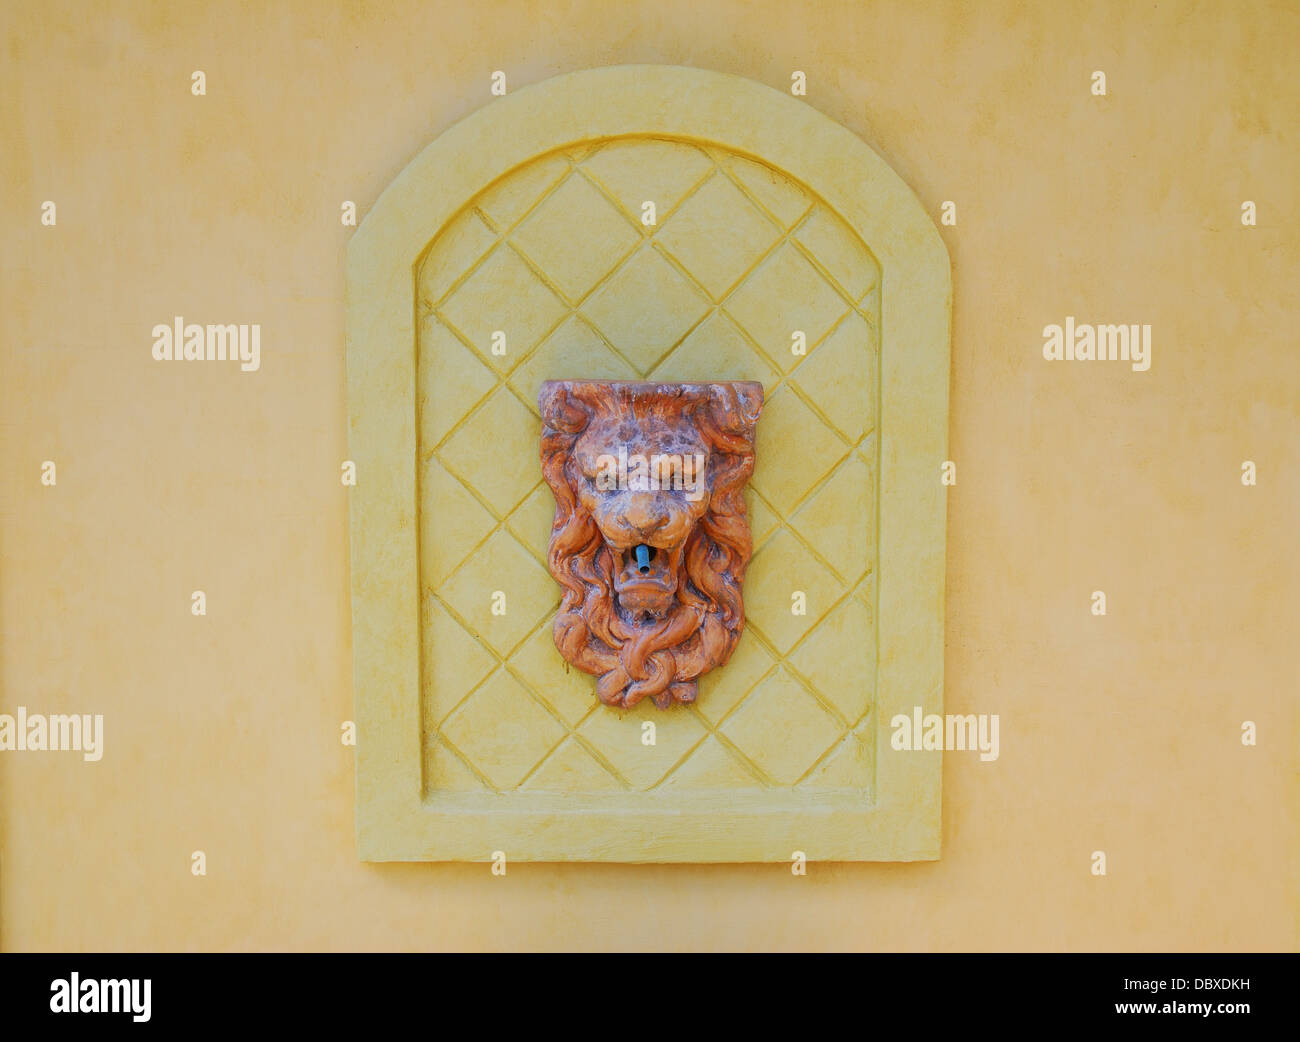 Tuscan Style Stock Photos & Tuscan Style Stock Images - Alamy